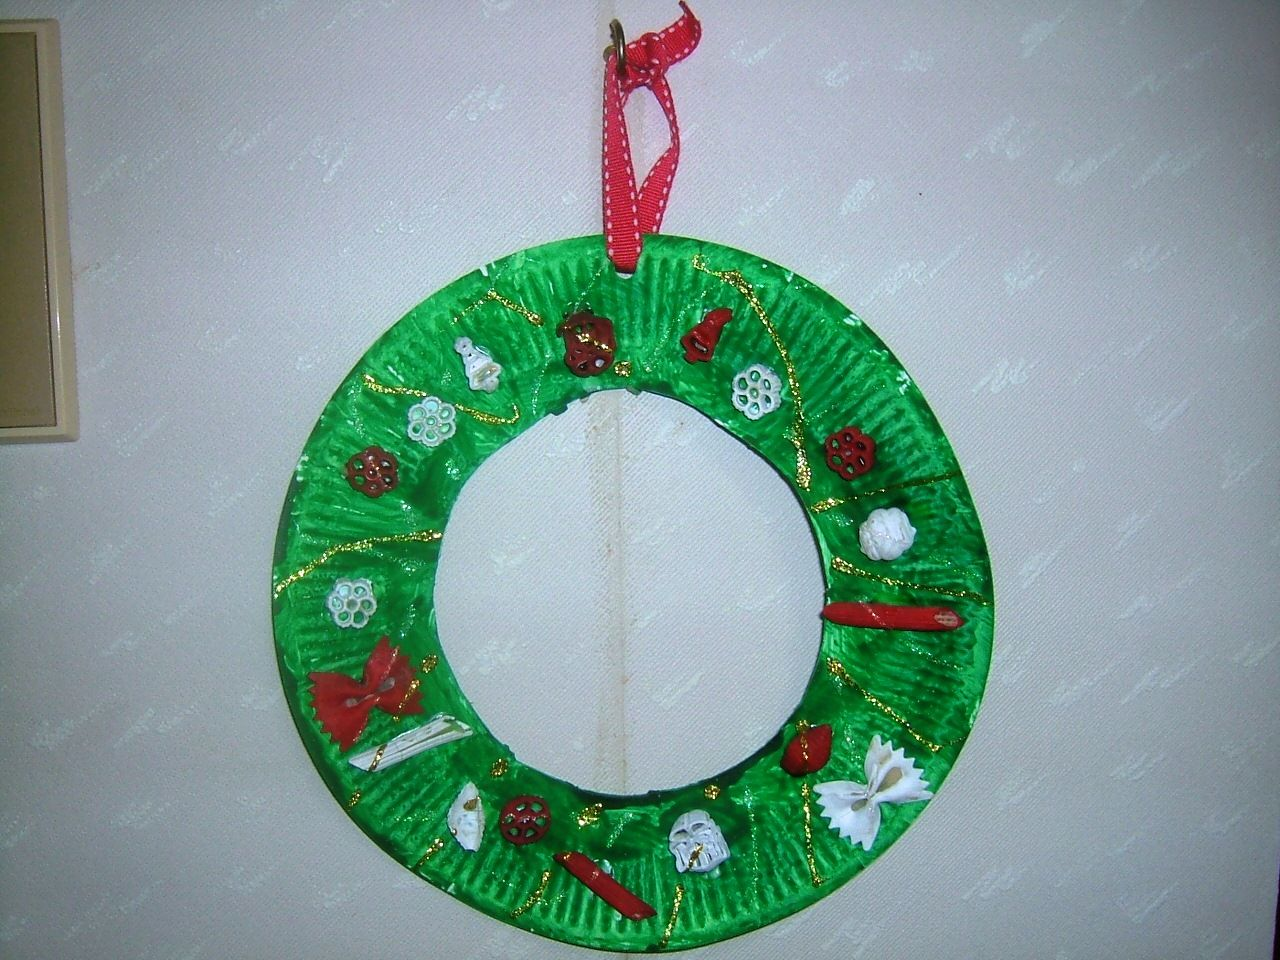 Beautiful Arts And Crafts Ideas For Christmas Gifts Part - 13: Pre-K Christmas Art Ideas | ... Latest And Unique Xmas Craft Ideas